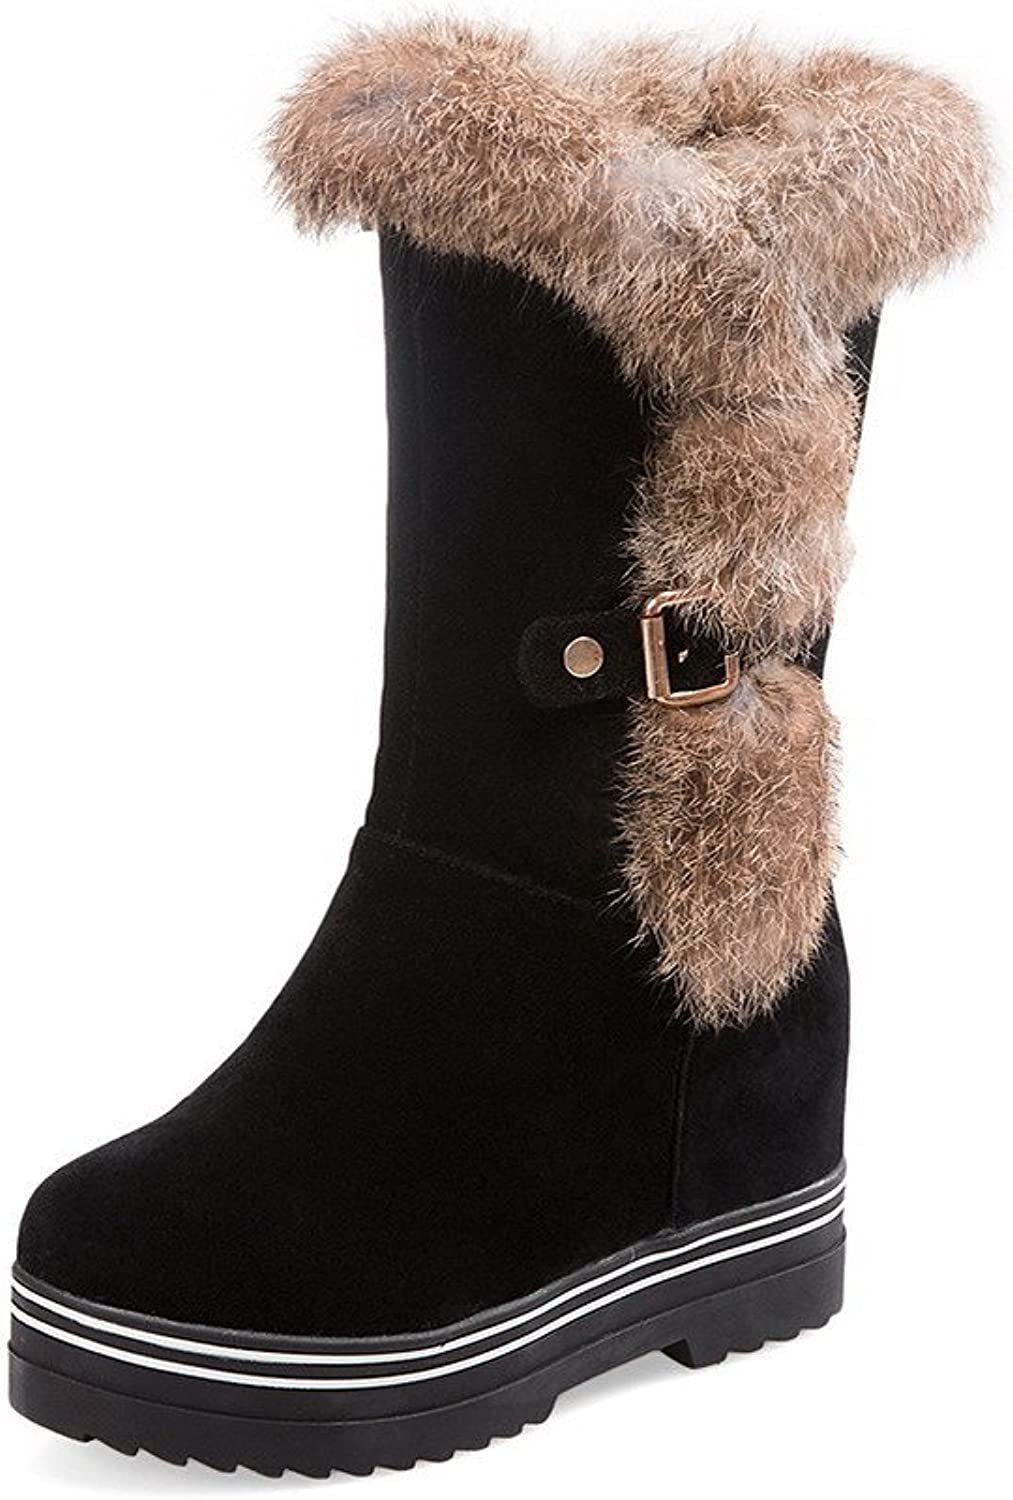 AllhqFashion Women's Frosted Pull-on Round Closed Toe High-Heels Mid-top Boots